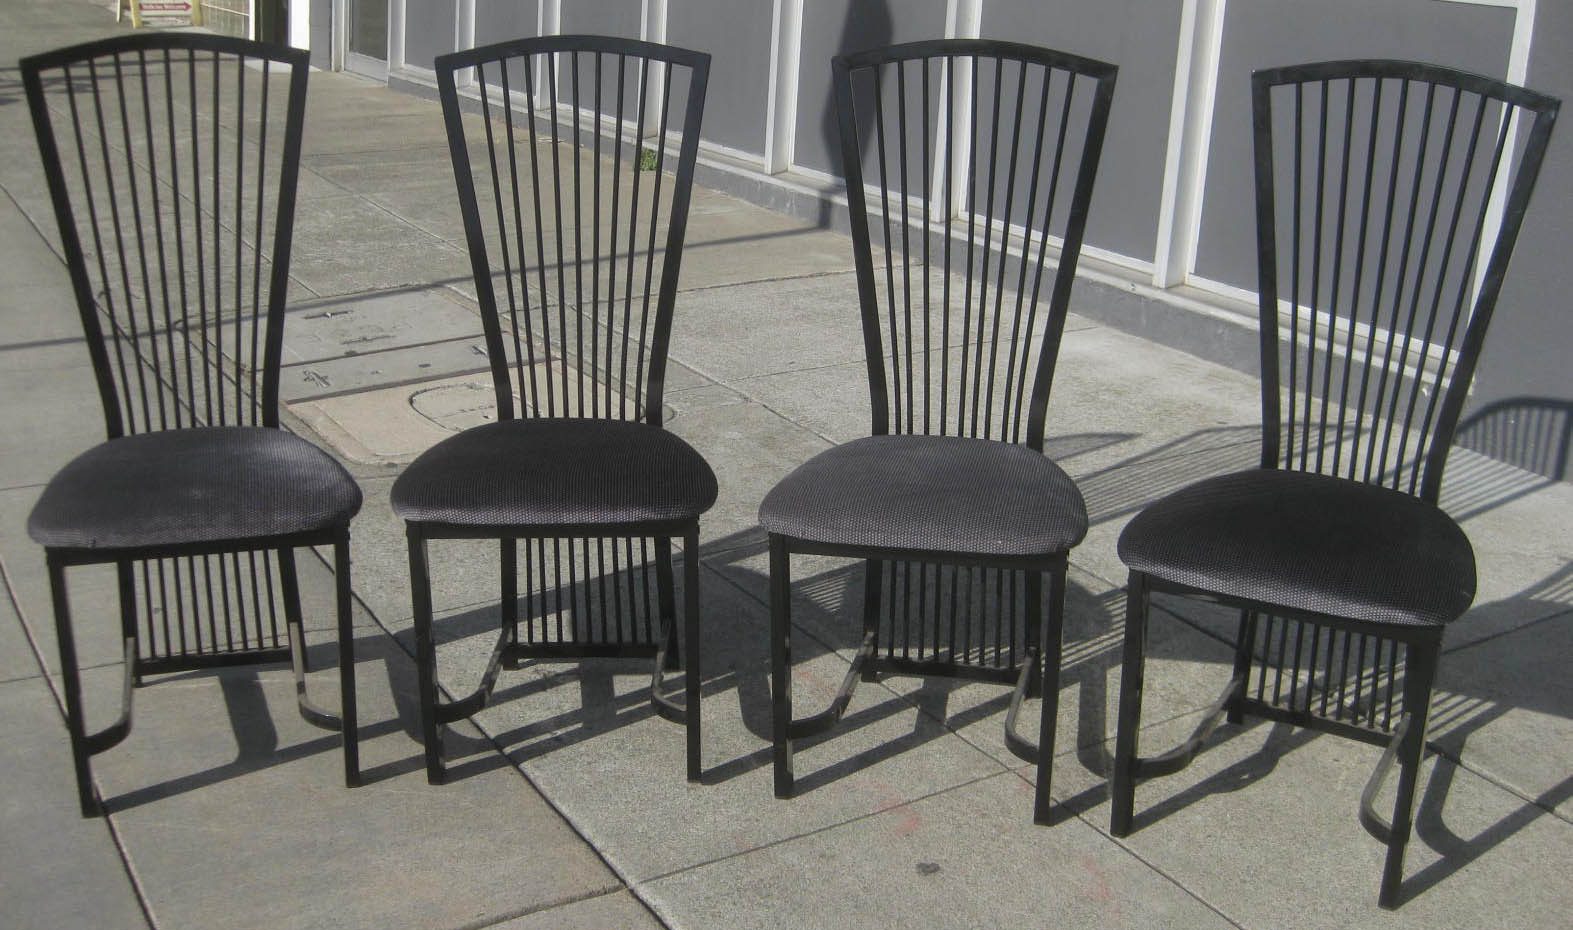 metal kitchen chair simply bows and covers- newcastle gateshead uhuru furniture collectibles sold 4